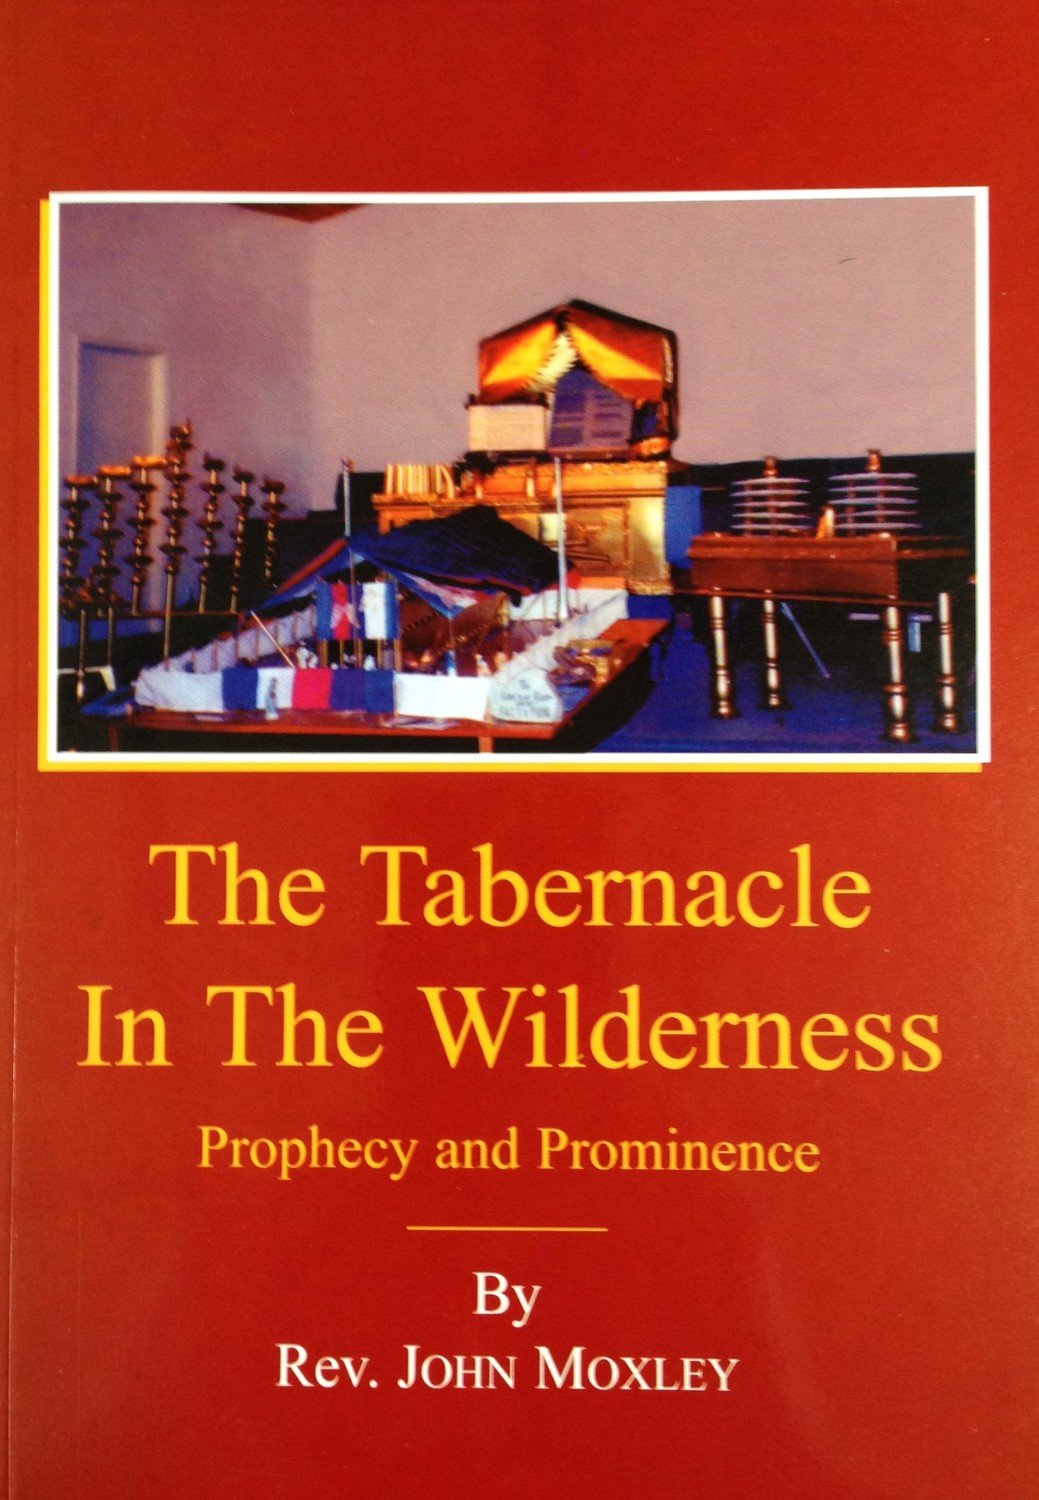 The Tabernacle in The Wilderness:  Prophecy and Prominence by John Moxley